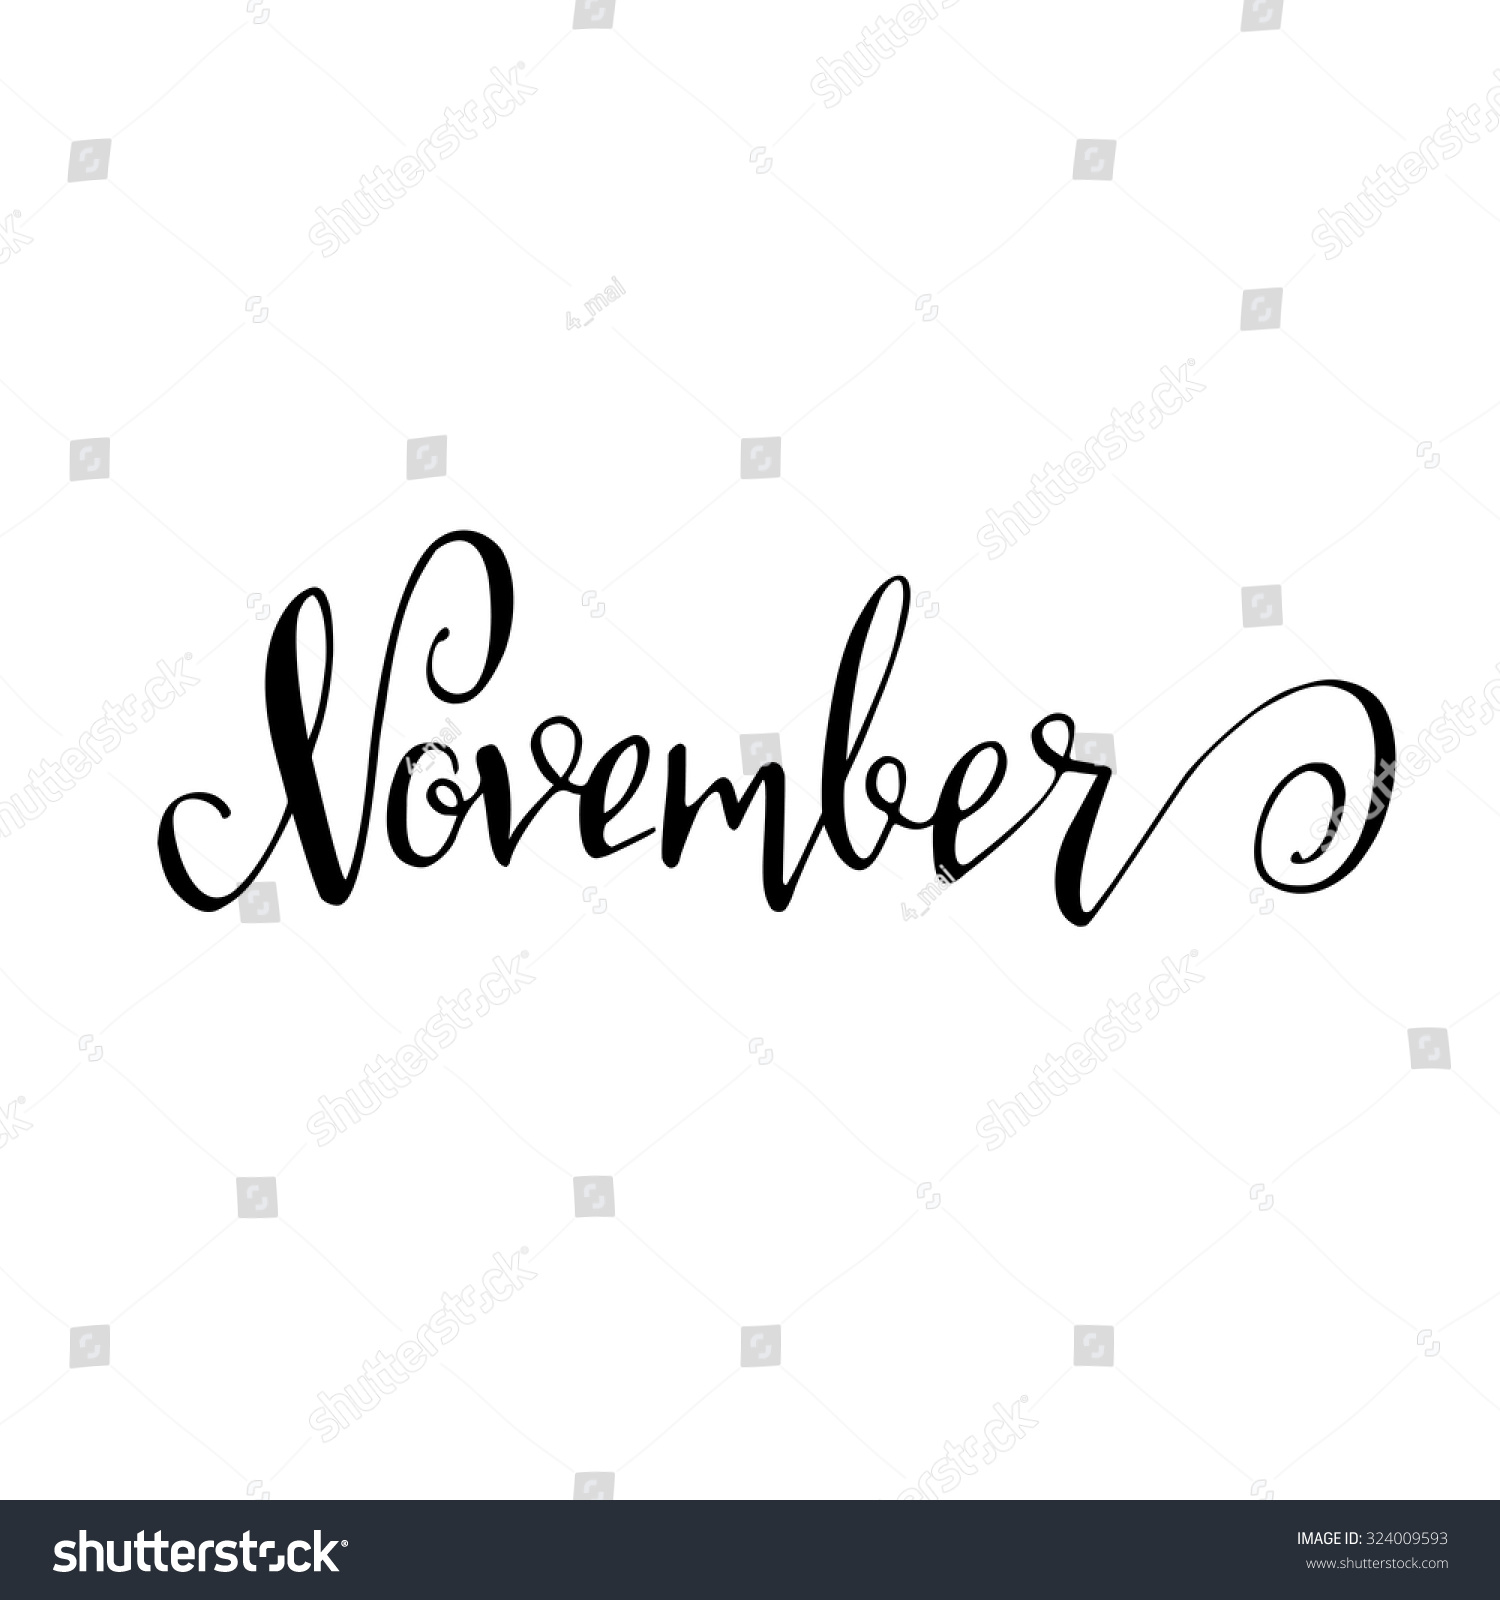 November month lettering calligraphy sign isolated on Calligraphy and sign